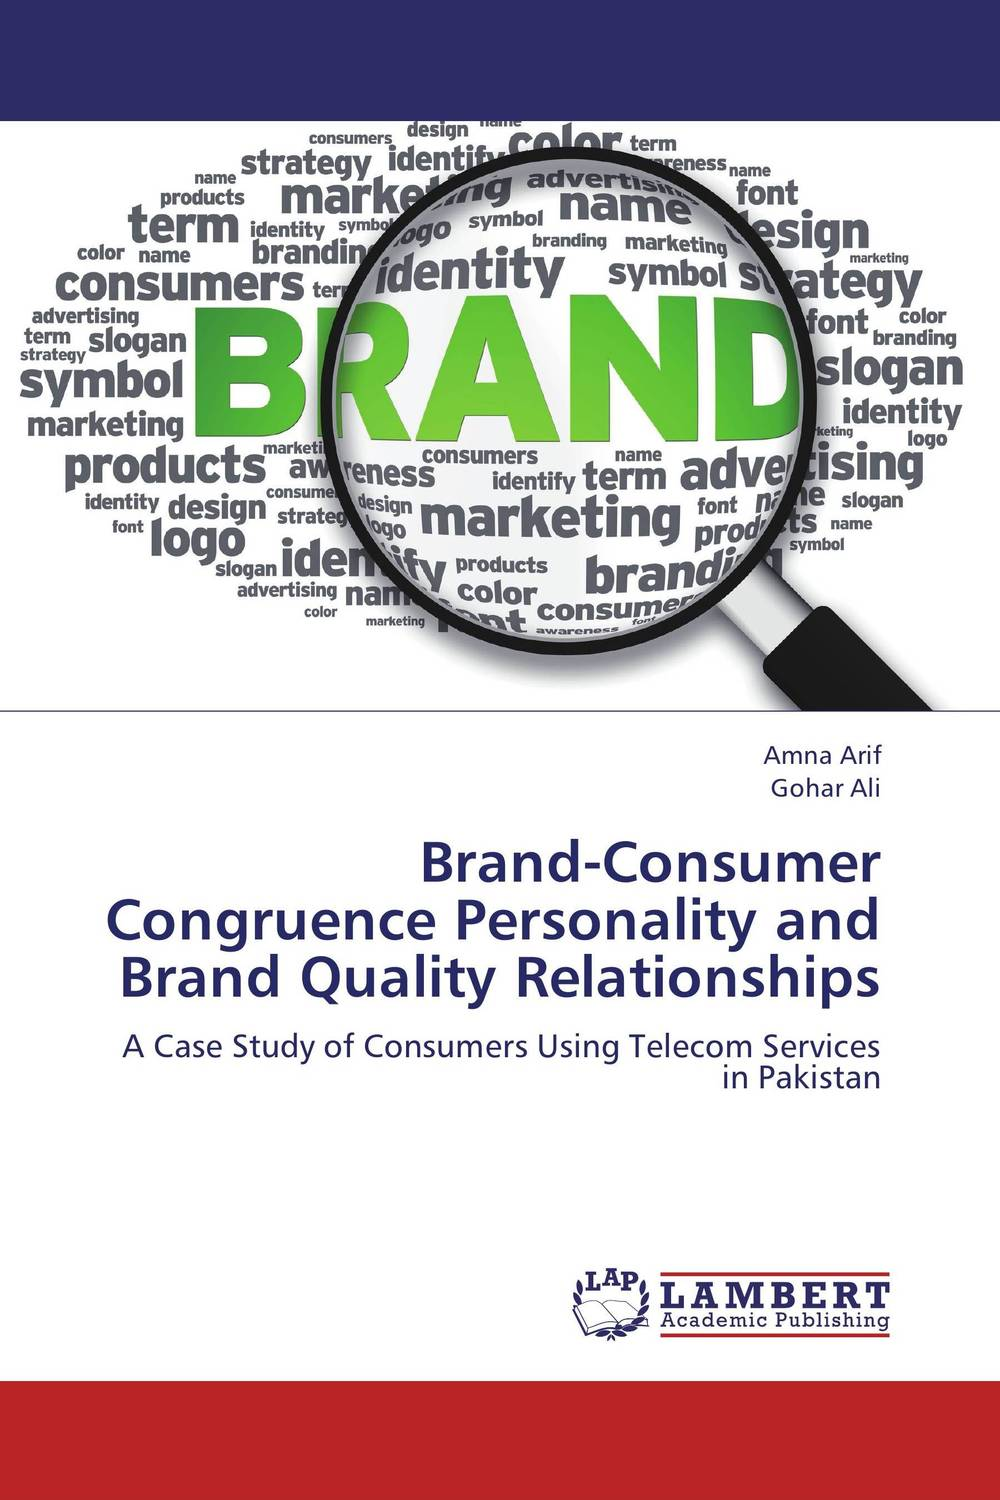 Brand-Consumer Congruence Personality and Brand Quality Relationships personality traits